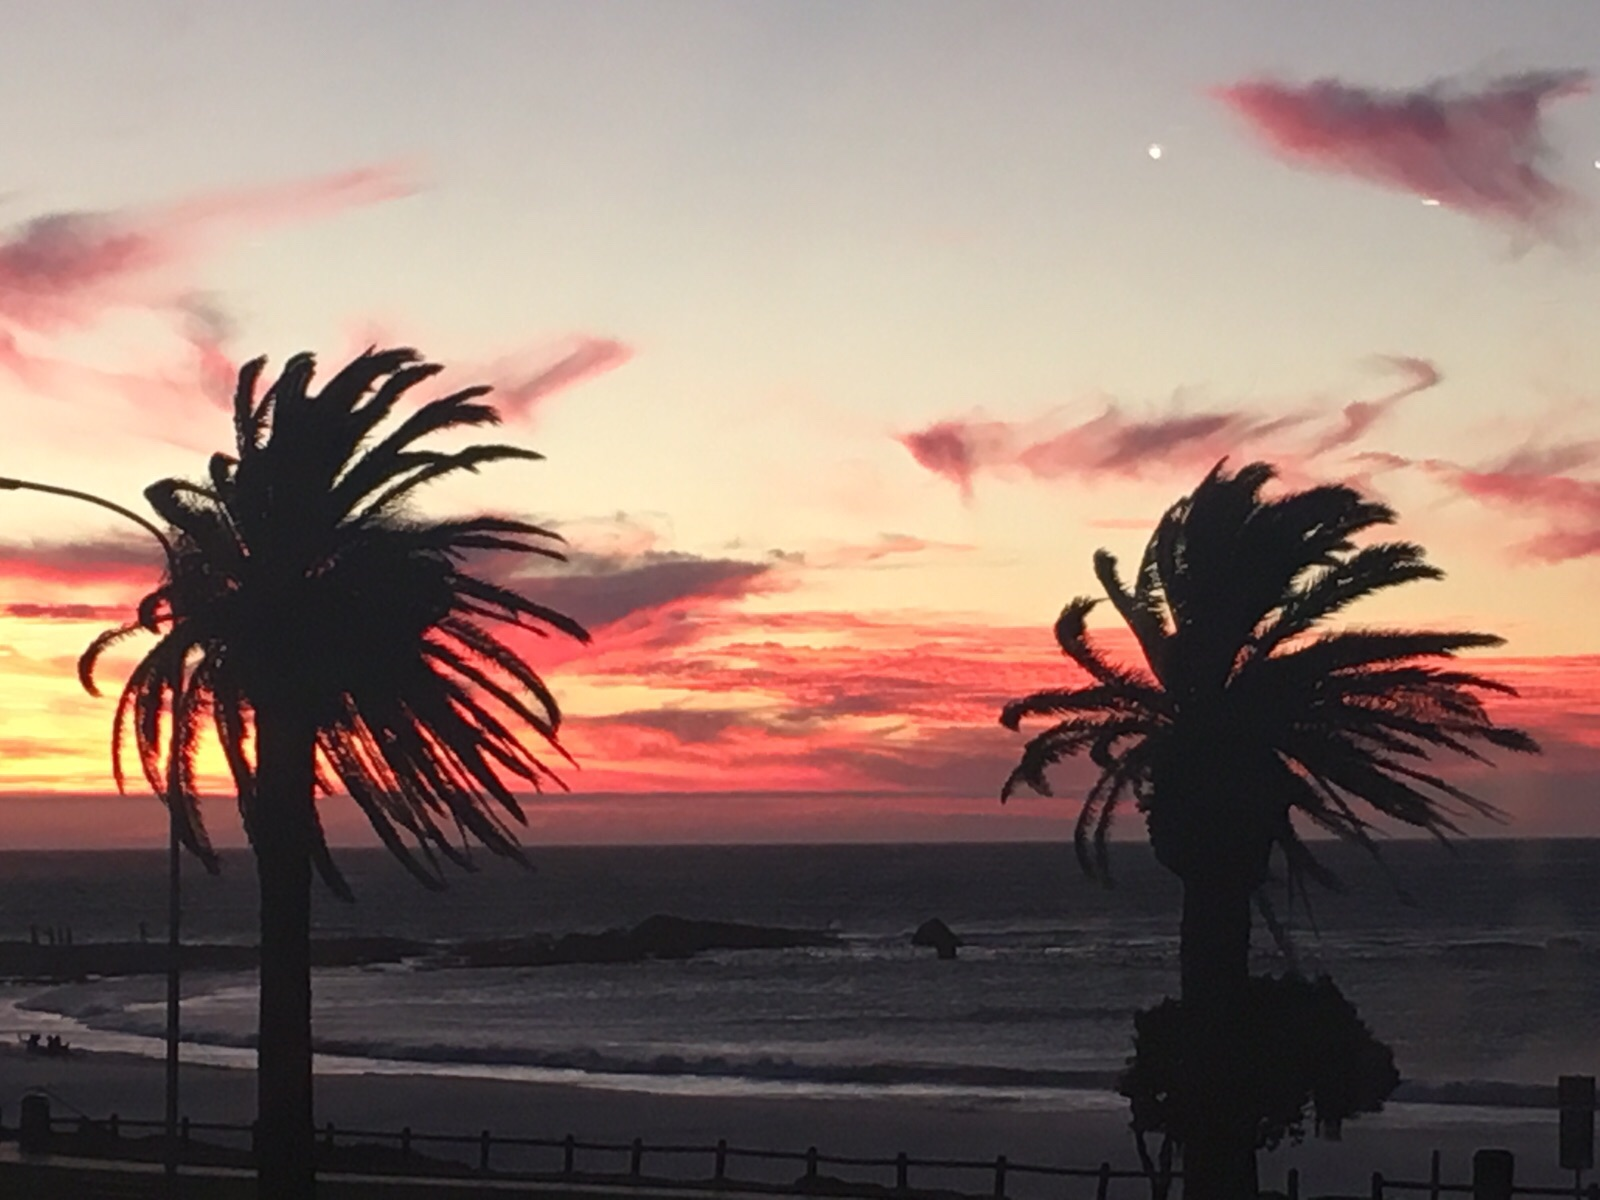 3 On Camps Bay - The Strip Sunset View